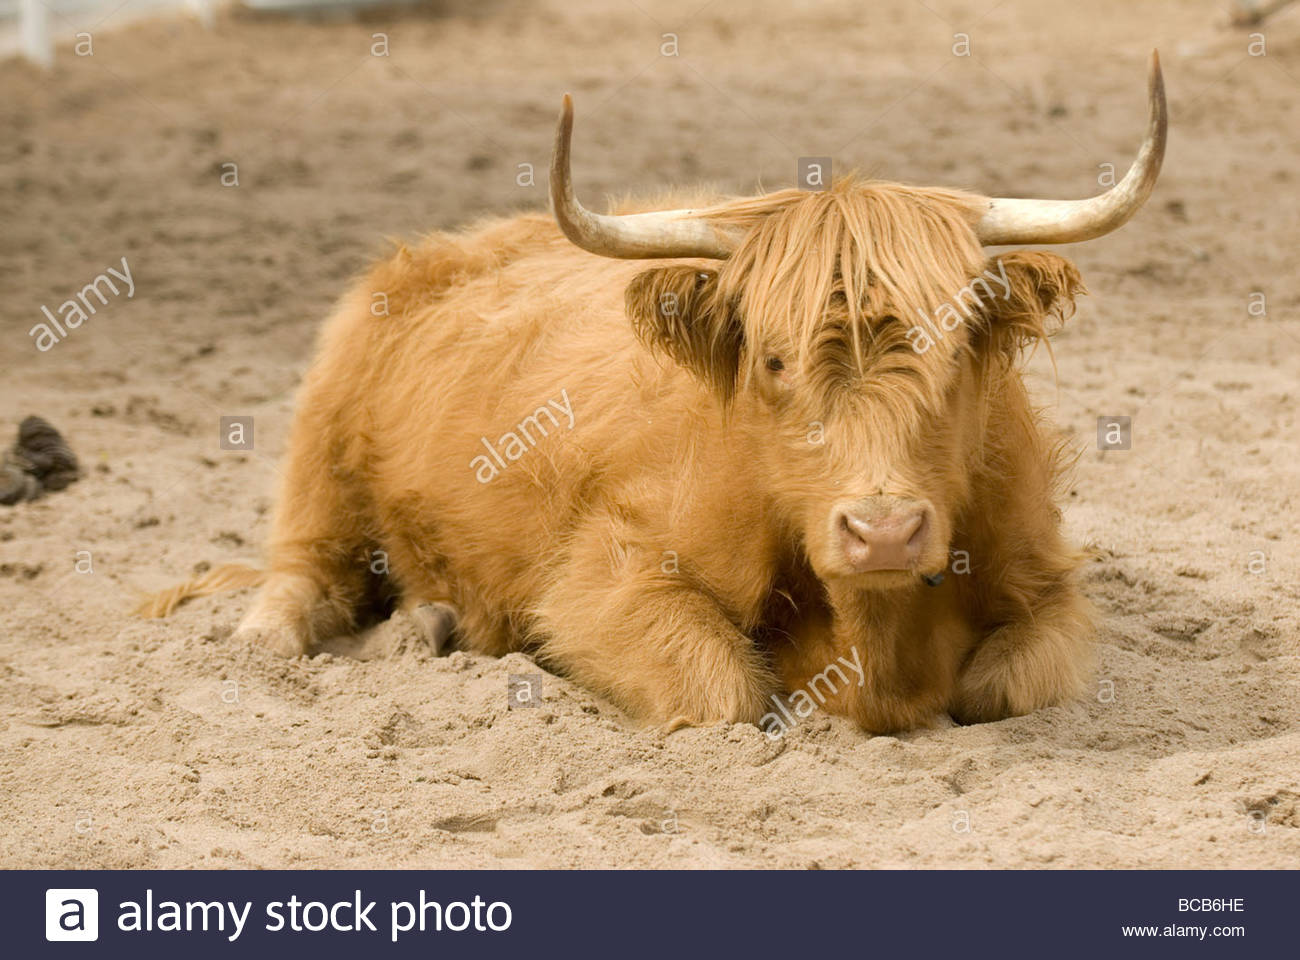 A rare, domestic ox at the Sedgwick County zoo. - Stock Image